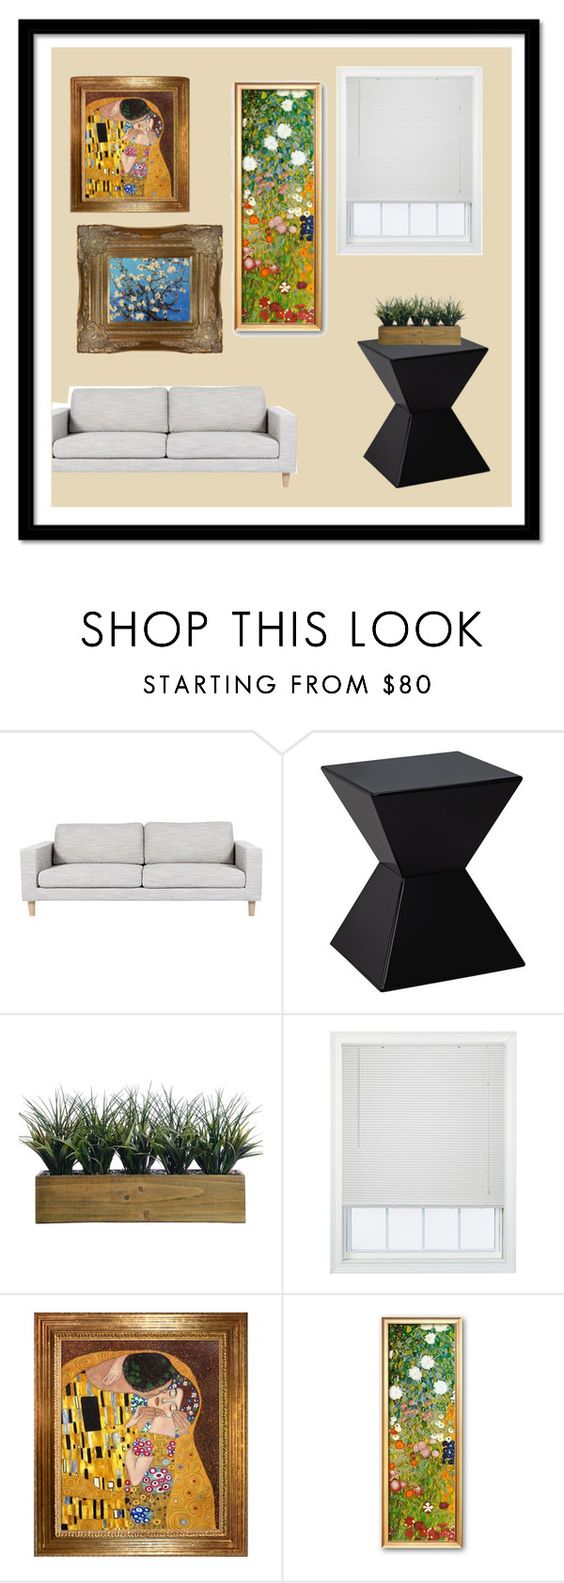 """""""Art, antique, a living thing"""" by kankenkiid ❤ liked on Polyvore featuring interior, interiors, interior design, home, home decor, interior decorating, Sunpan, Laura Ashley and JCPenney Home"""